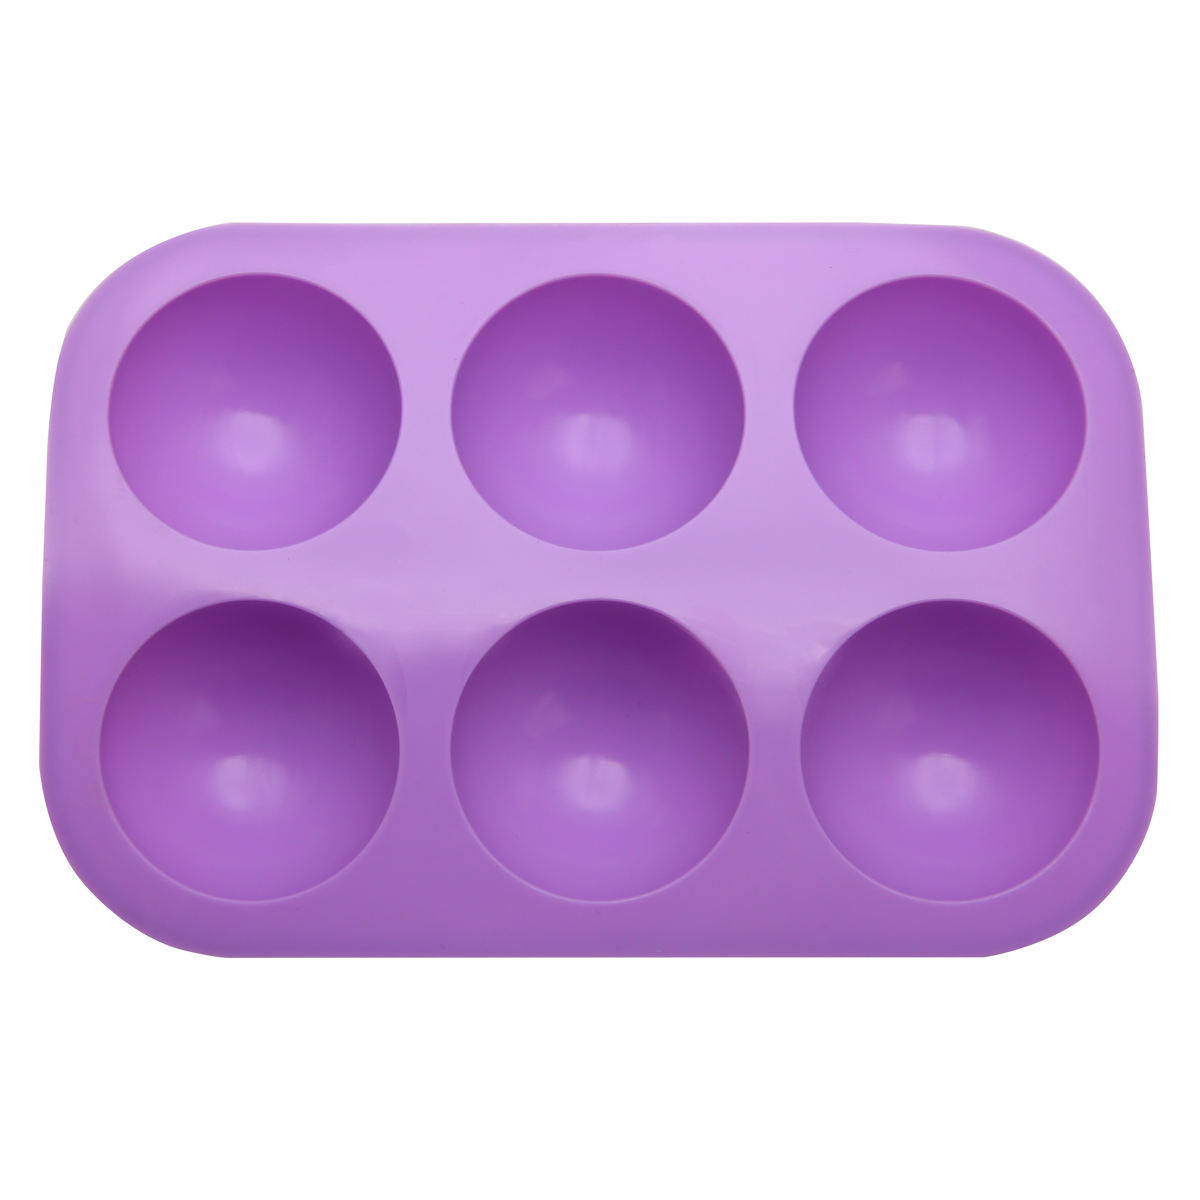 Wholesale 6 Cavities Half Sphere Handmade Soap Making Molds Silicone Baking Mold